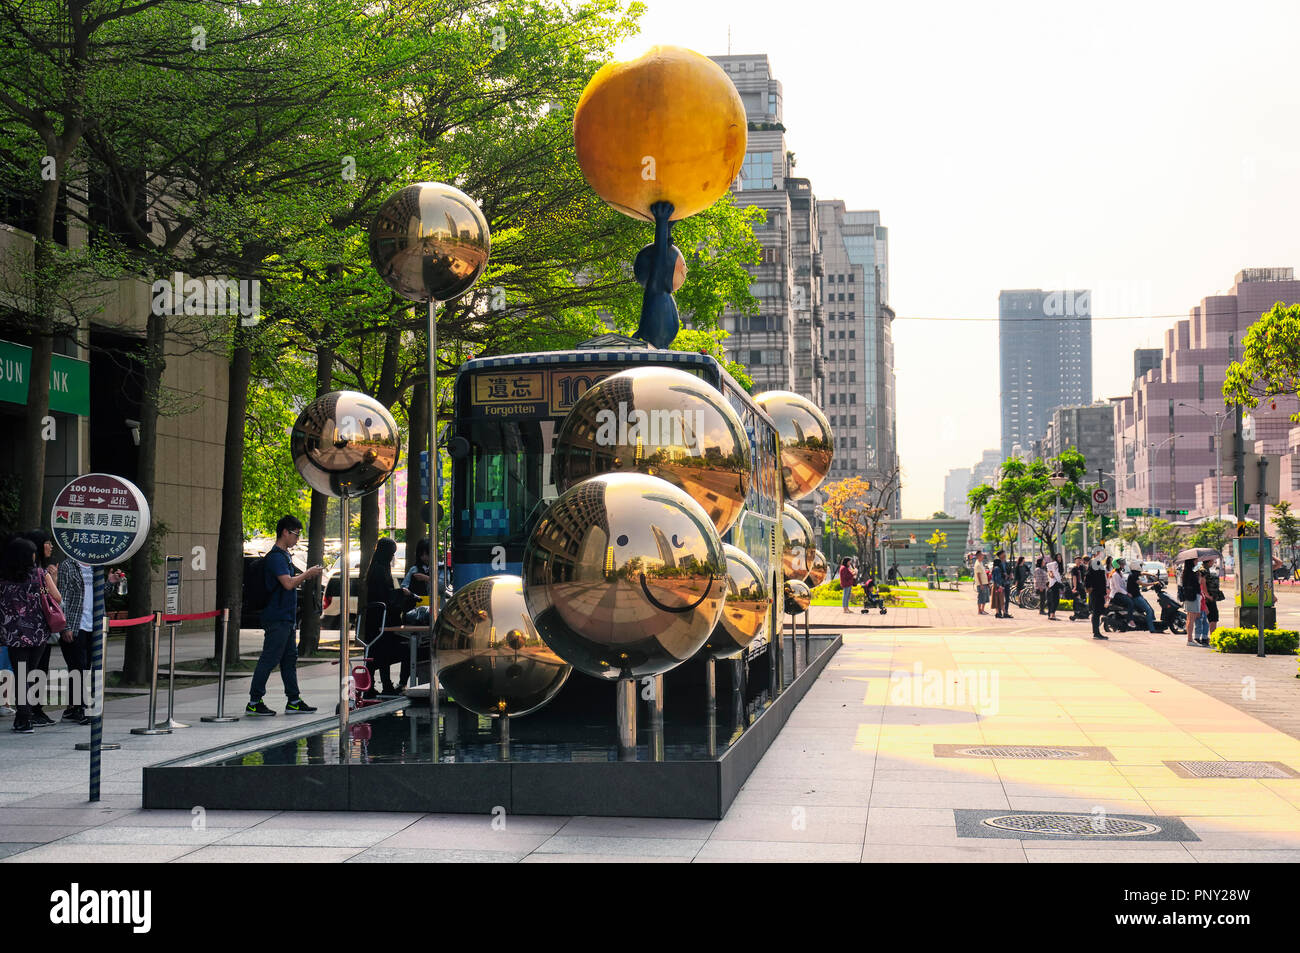 April 1, 2018.  Taipei, Taiwan.  Taiwan tourists lined up to enter the 100 Moon Bus attraction in the city of Taipei, Taiwan. - Stock Image